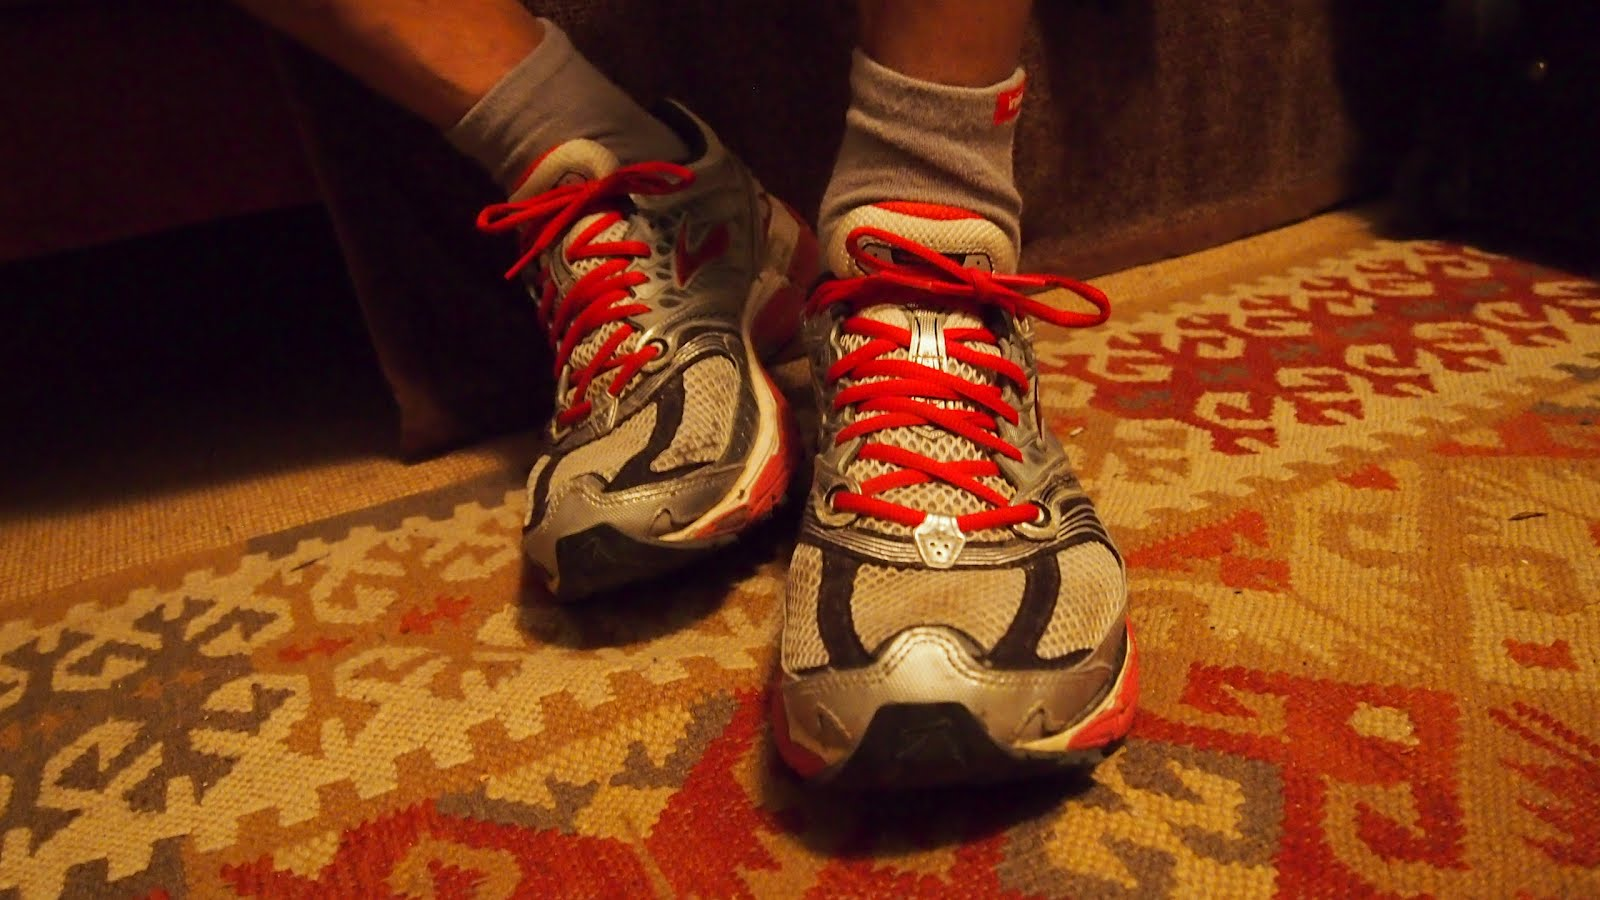 Walking in old or worn-out shoes are a common cause of injury goes. Your running  shoes lose shock absorption bf724796ae